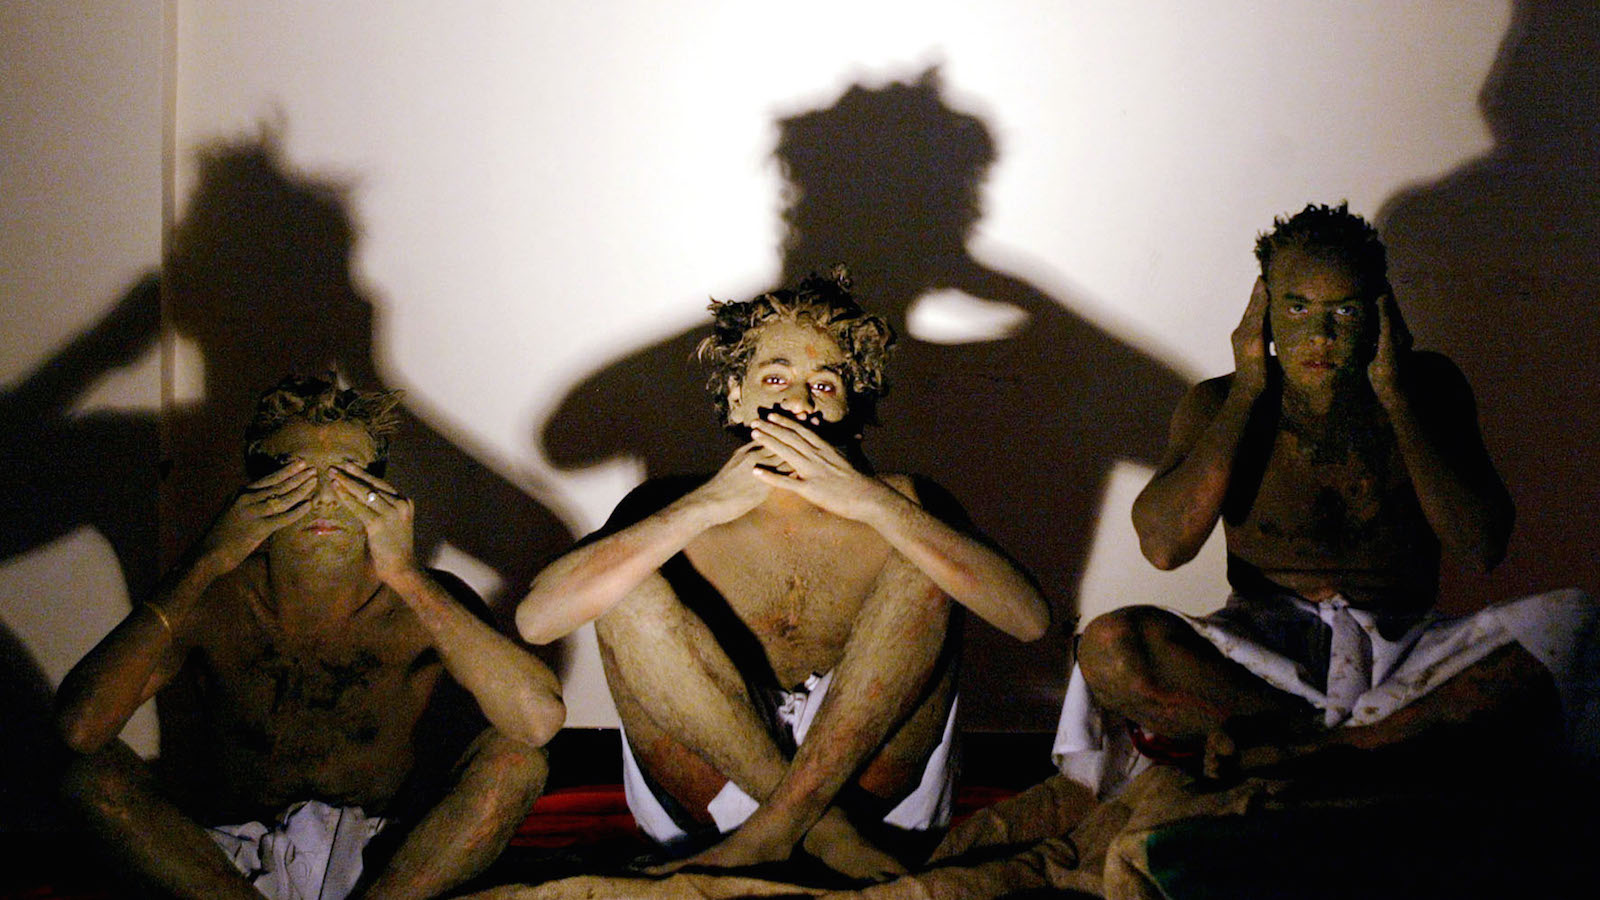 """Indian college students demonstrate the concept of """"hear no evil, see no evil, speak no evil', principles espoused by Mahatma Gandhi, during an event to mark the 55th anniversary of the death of Gandhi in Bombay January 30, 2003. Students from a city college reenacted several scenes from Gandhi's freedom struggle against the British colonial rule. REUTERS/Arko Datta  AD/CP - RTR11S7S"""